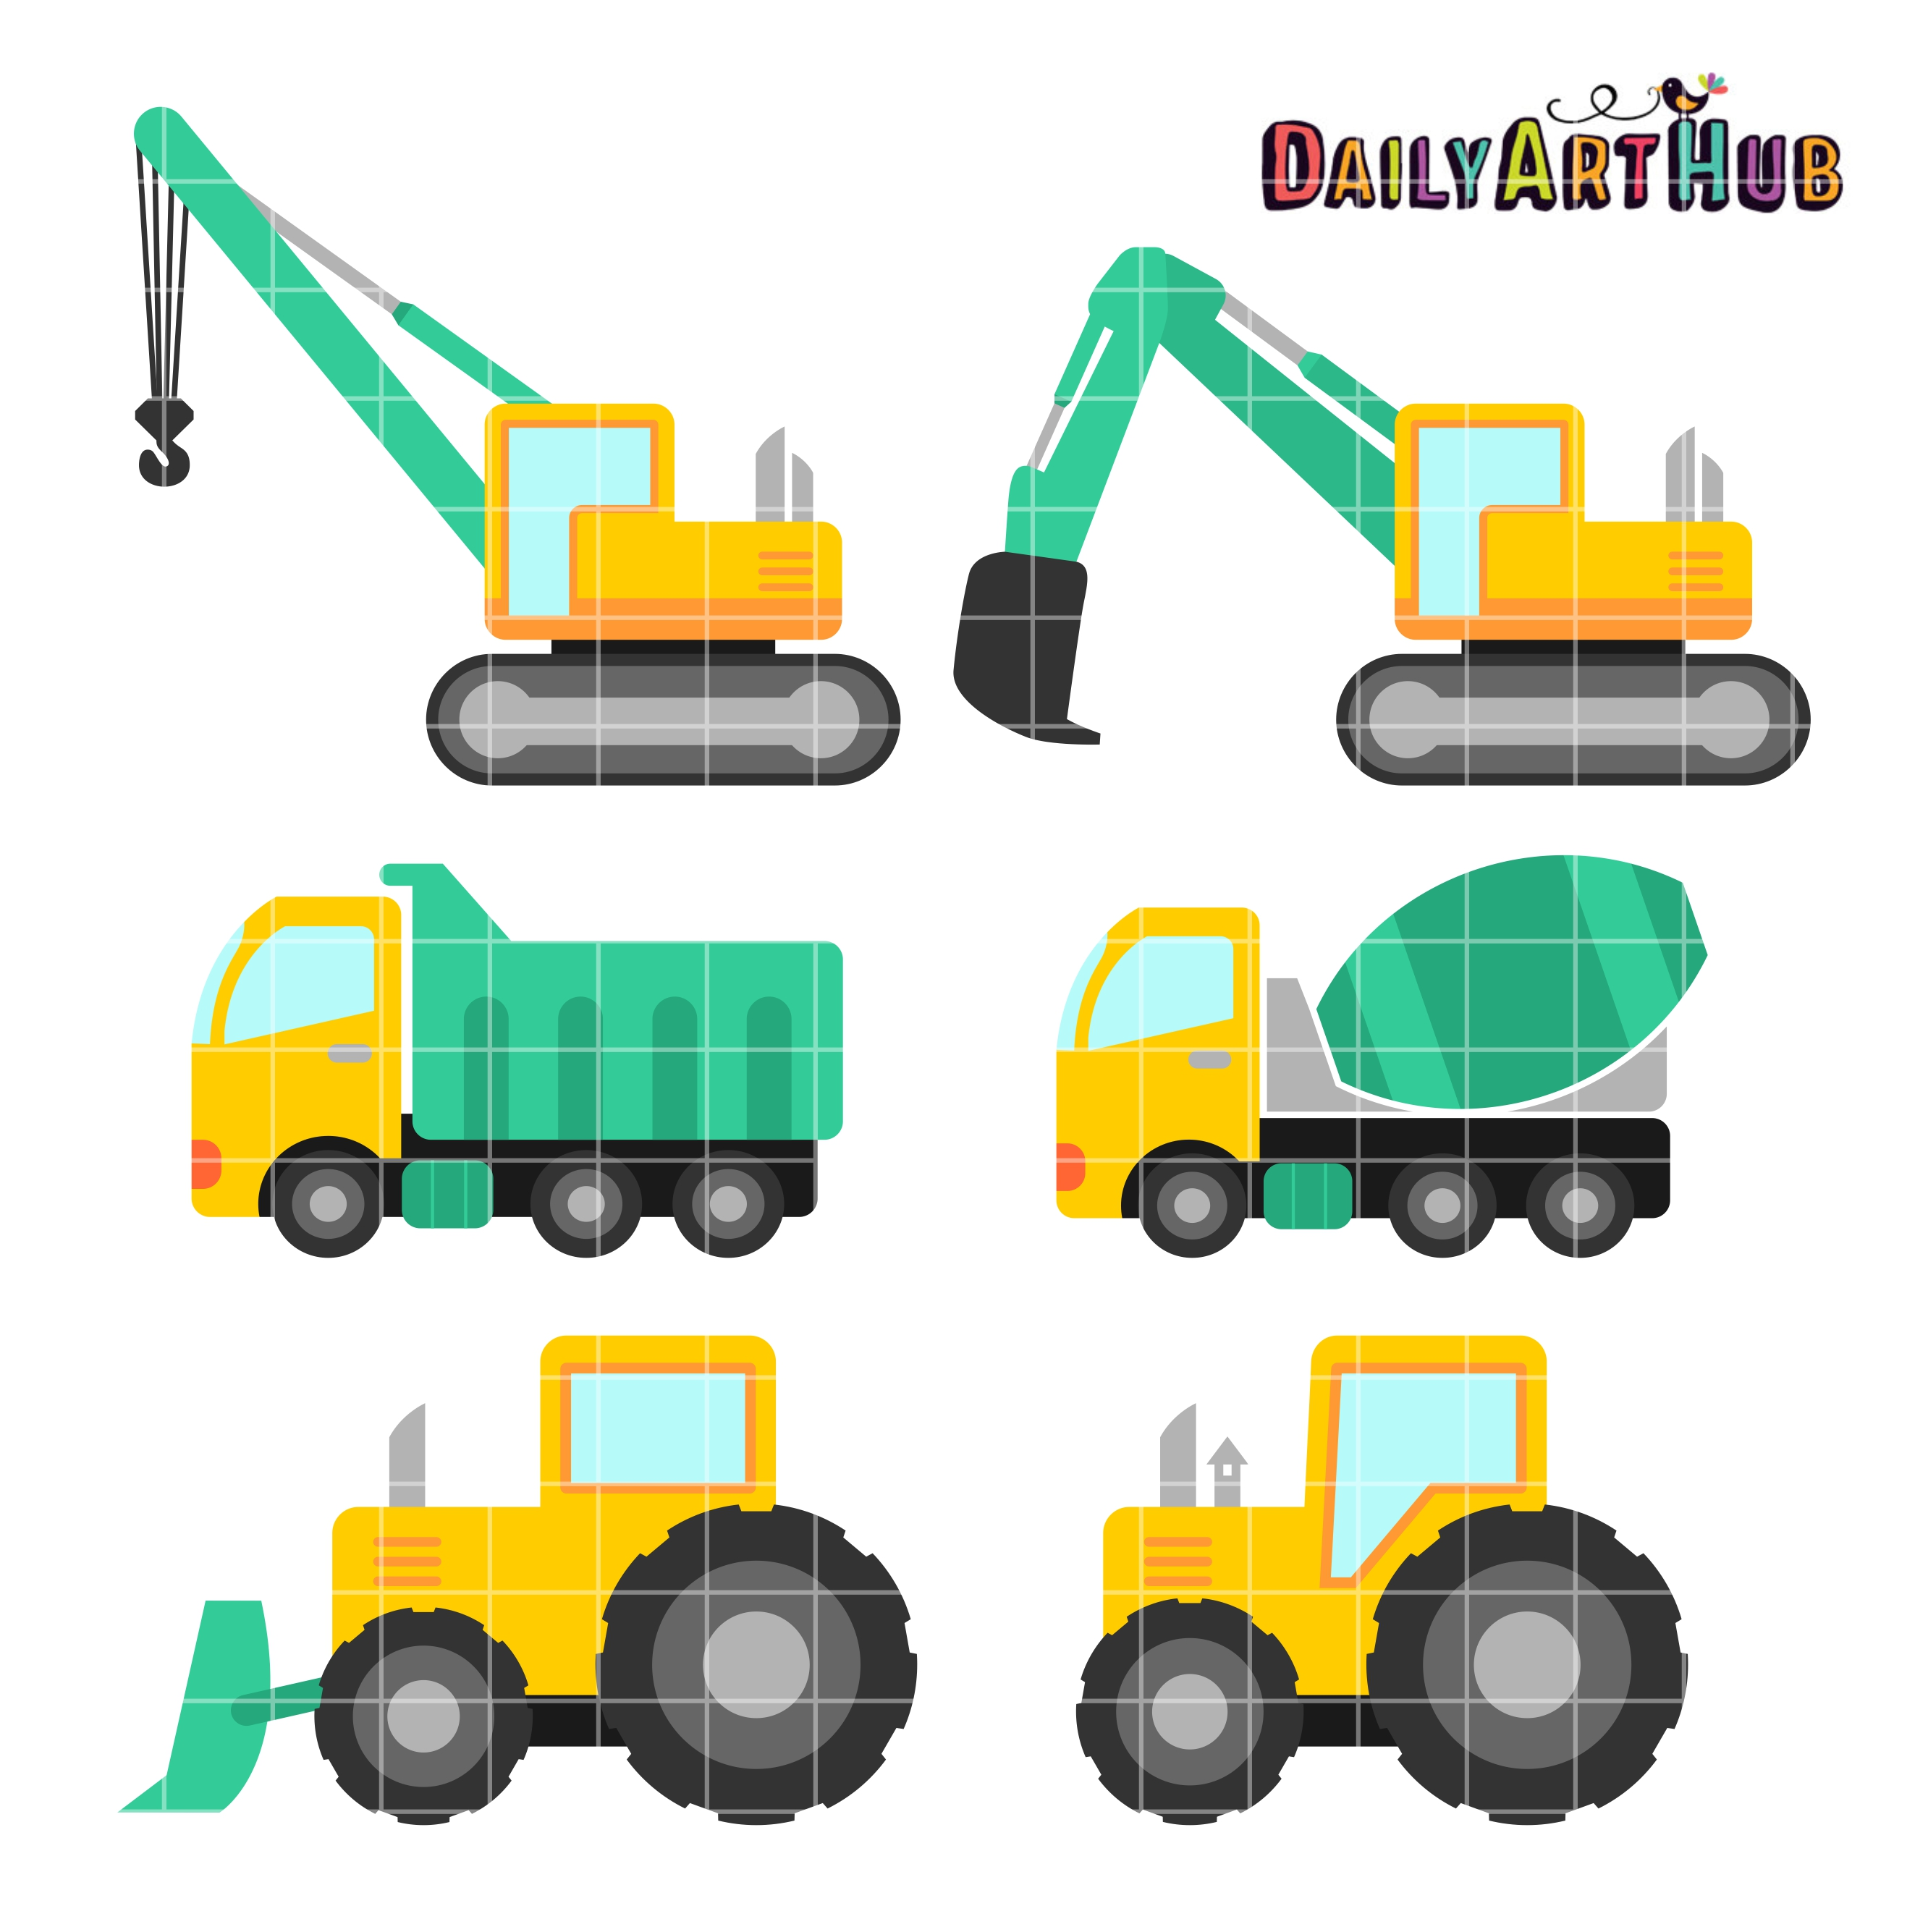 construction vehicles clip art set daily art hub free clip art rh dailyarthub com free clipart construction workers cartoon clipart construction gratuit